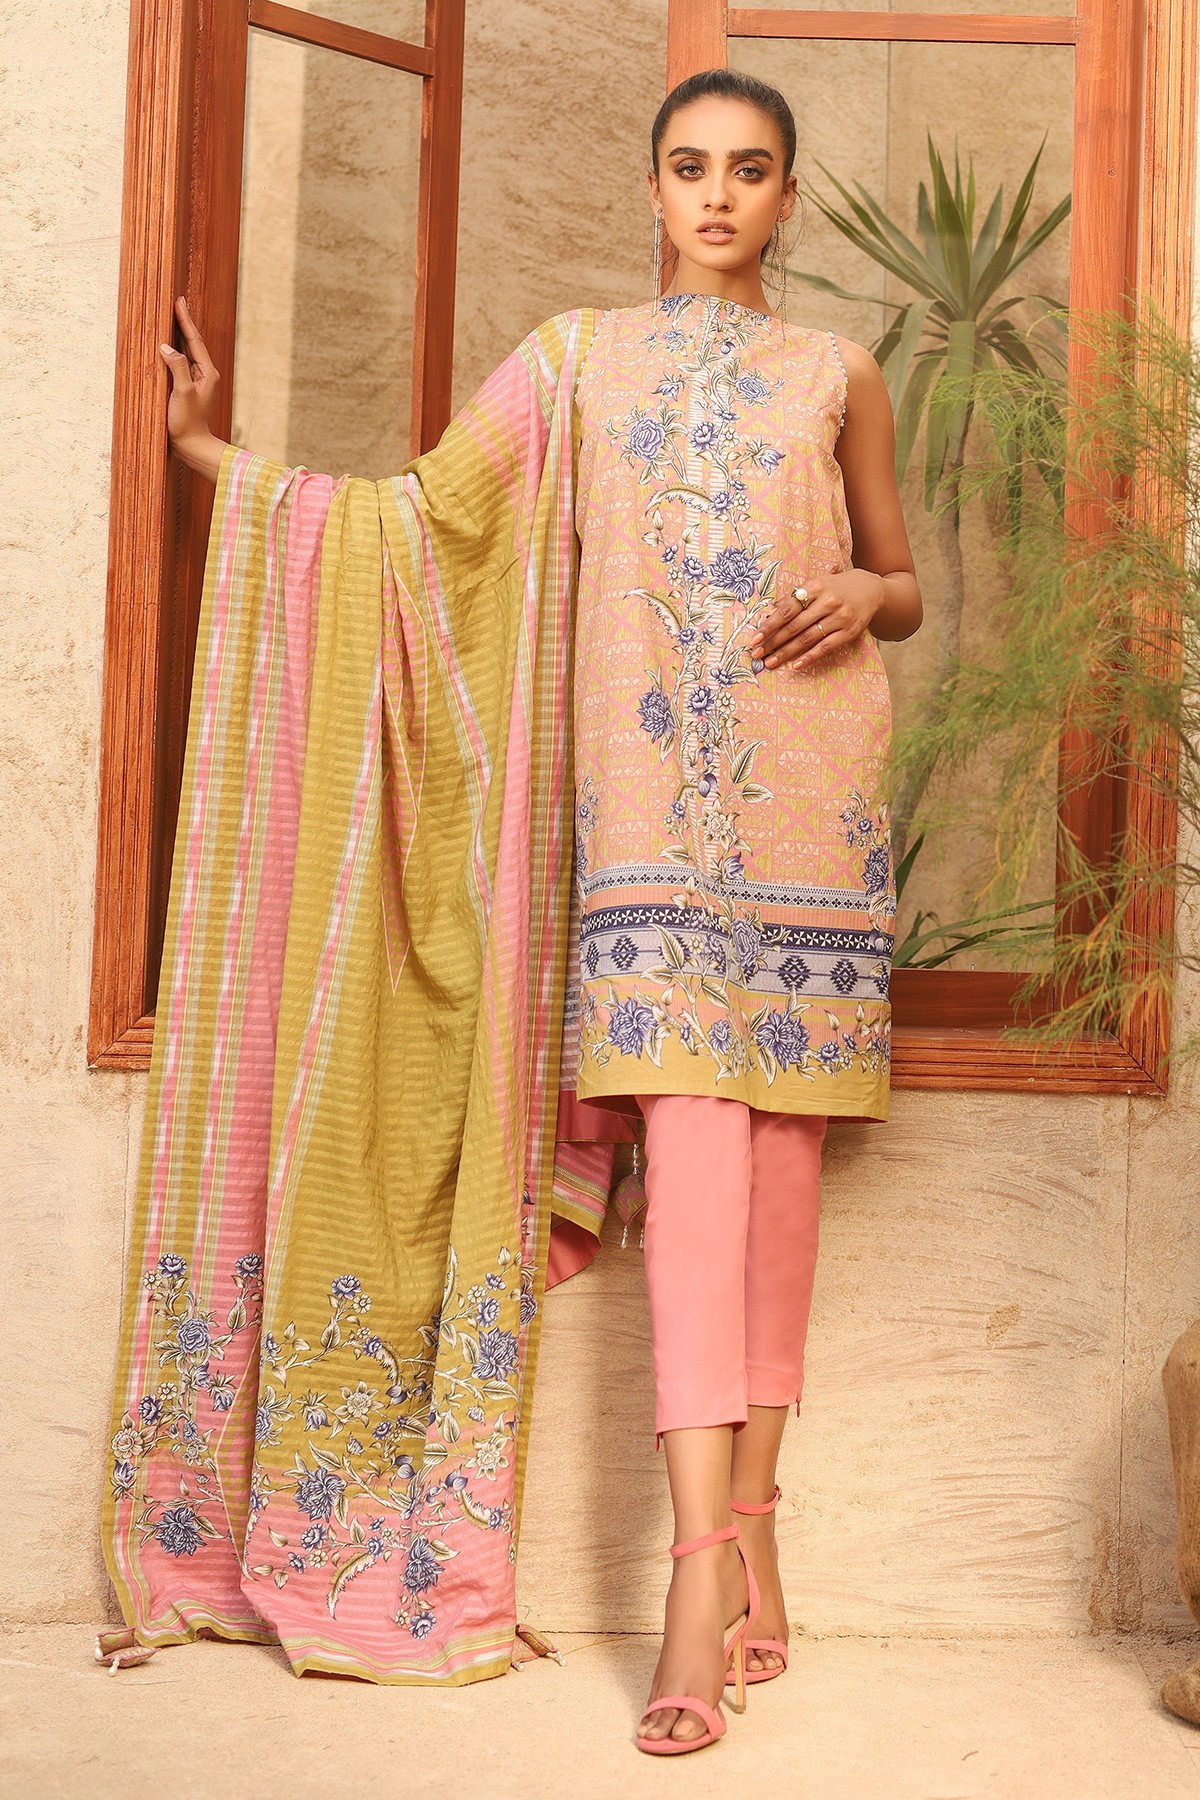 Alkaram Summer Lawn Designs Latest Suits